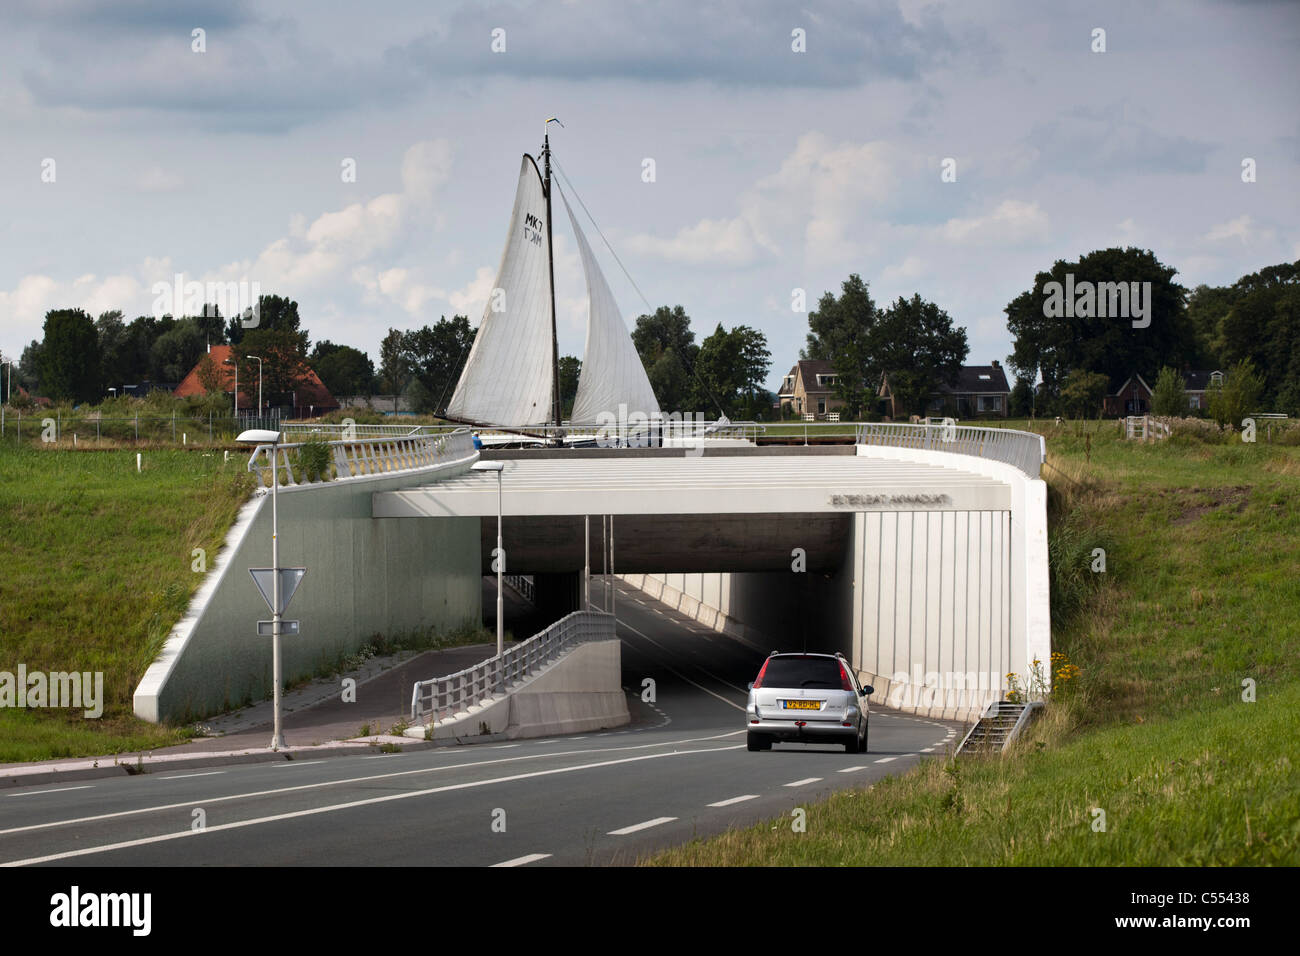 The Netherlands, Woudsend, Sailing boat passing aquaduct. - Stock Image